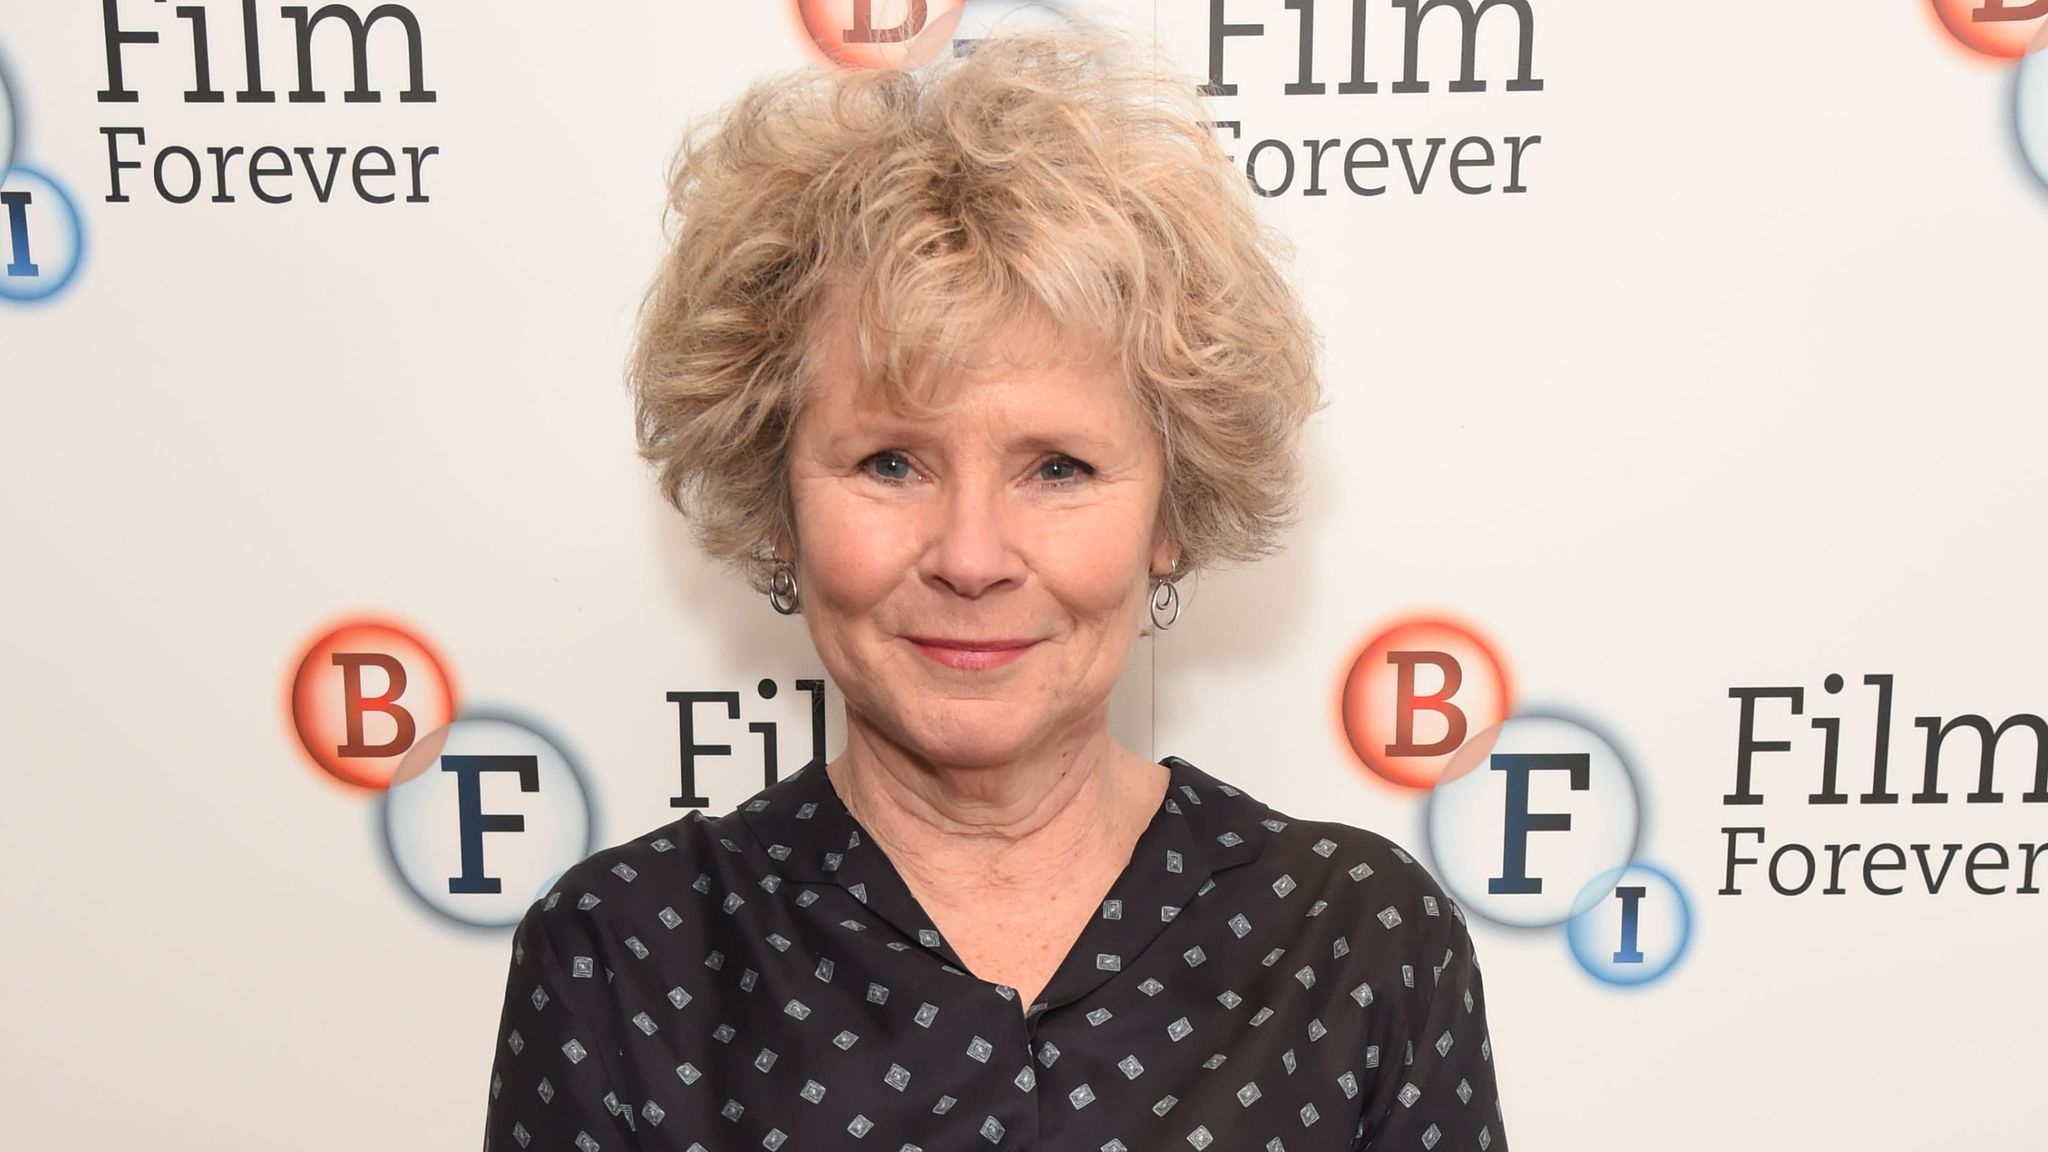 """LONDON, ENGLAND - DECEMBER 14: Imelda Staunton attends a screening of """"West Side Story"""" with introduction by Imelda Staunton at the BFI Southbank on December 14, 2019 in London, England. (Photo by David M. Benett/Dave Benett/Getty Images)"""